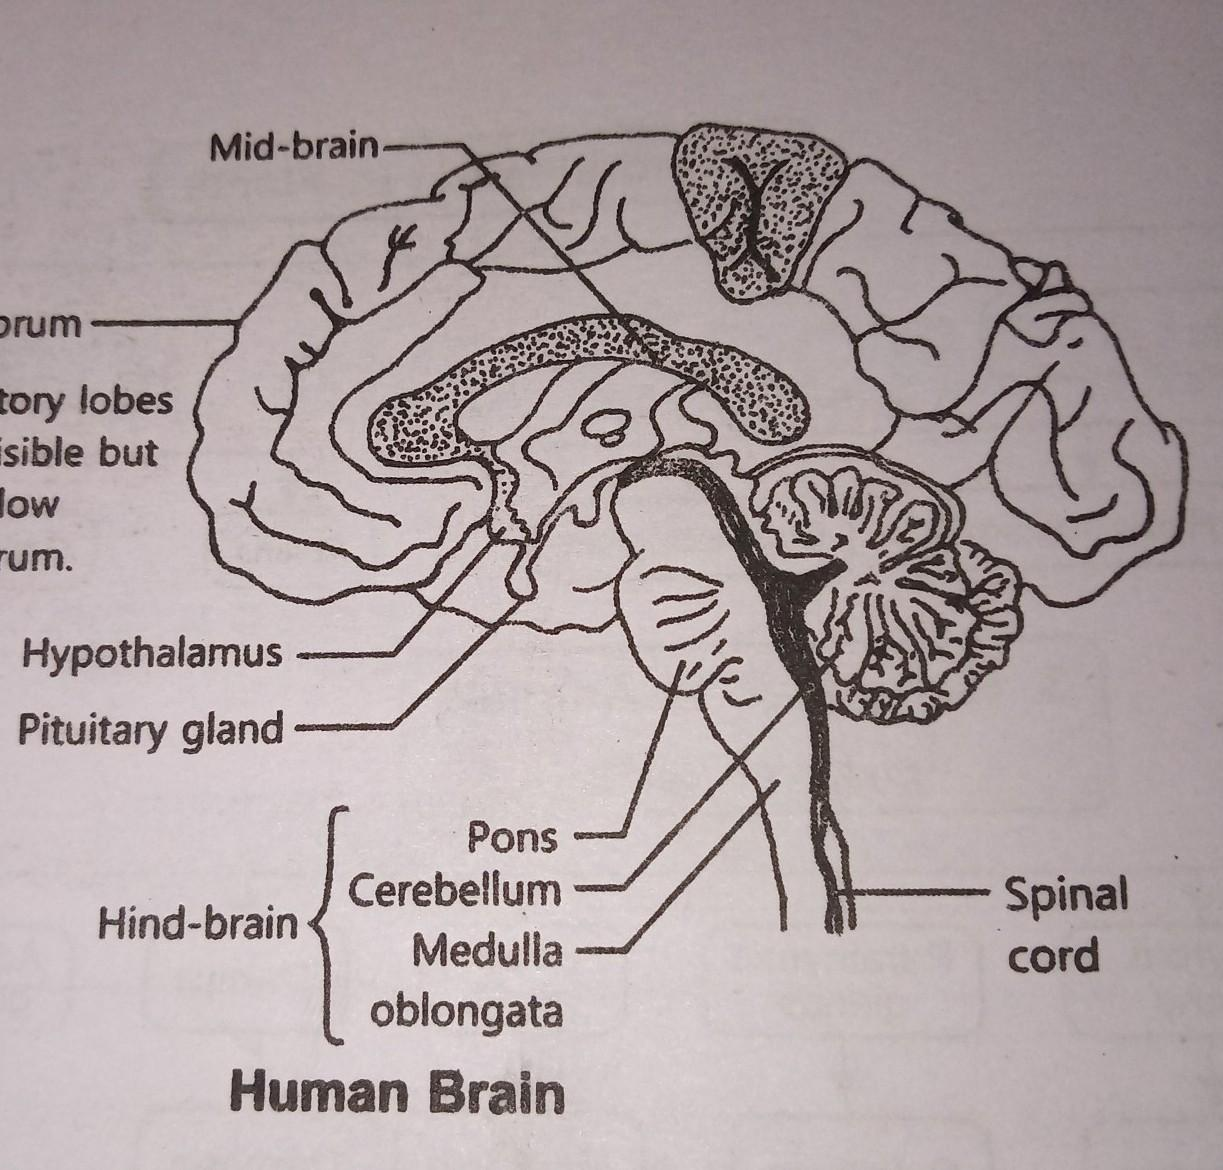 Draw A Well Labelled Diagram Of The Human Brain And